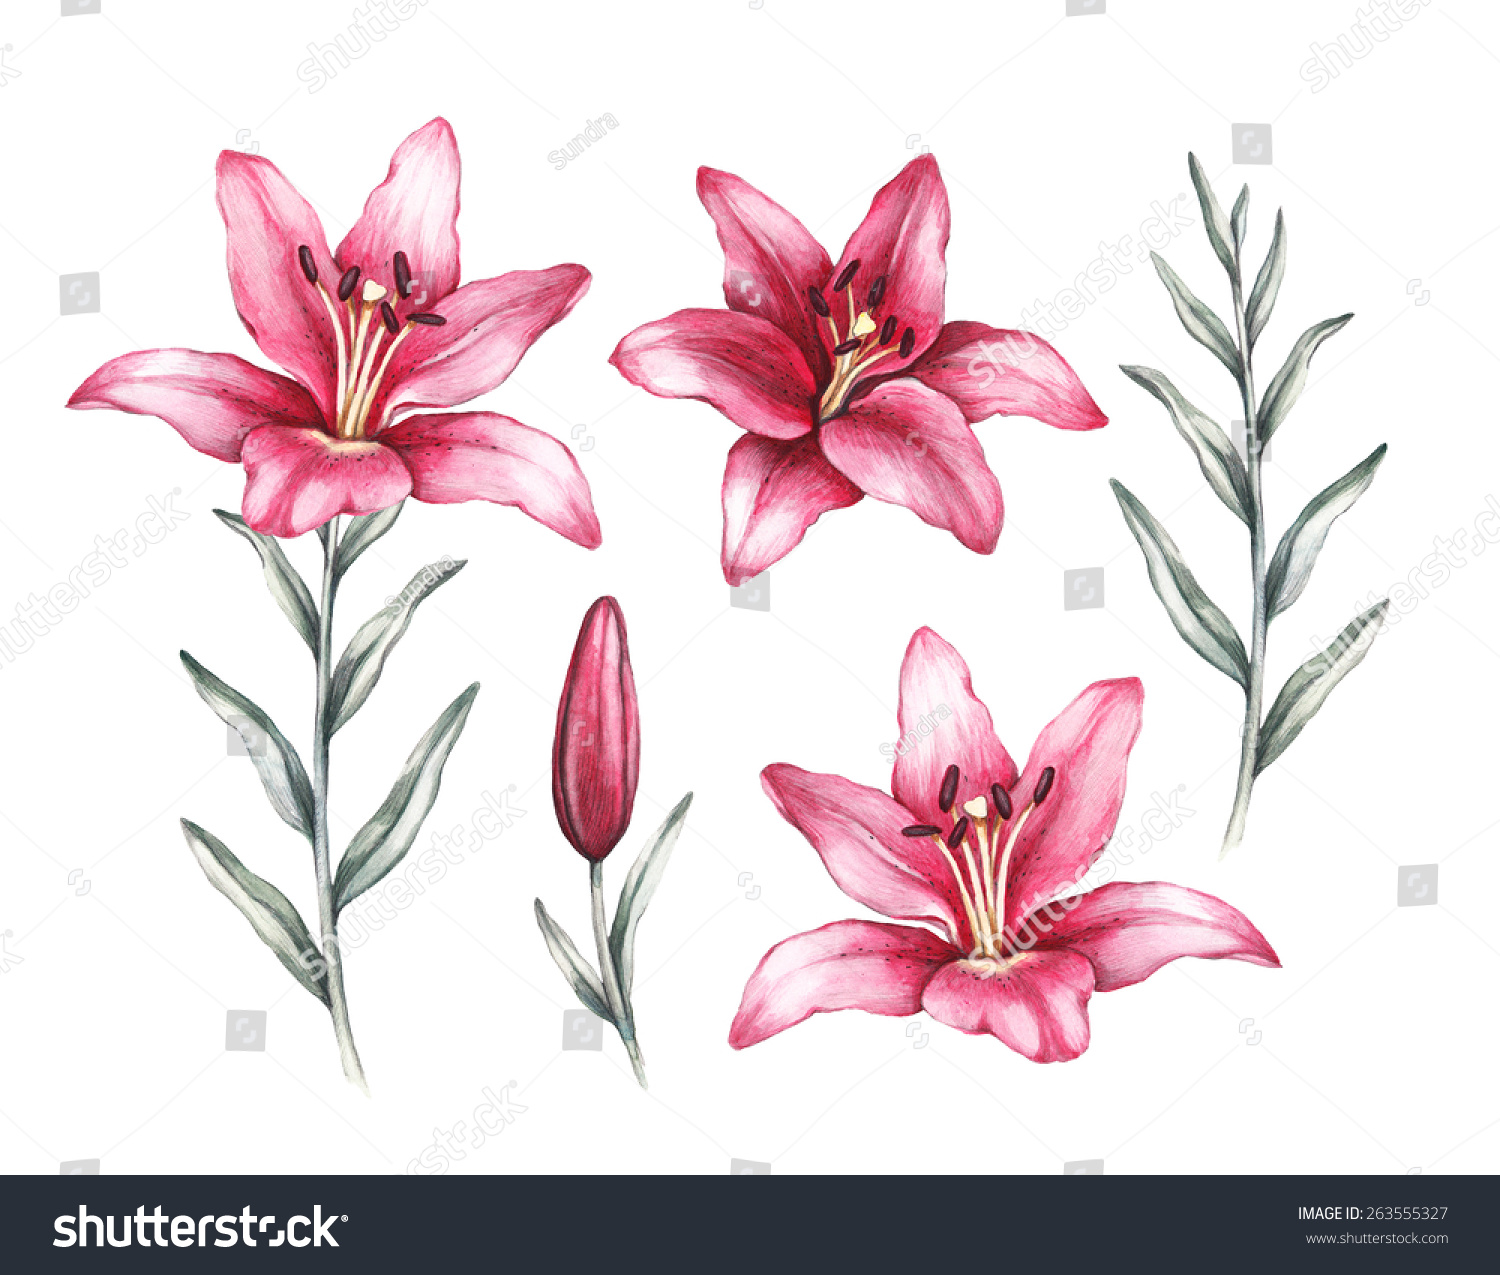 Drawings Lily Flowers Stock Illustration 263555327 Shutterstock